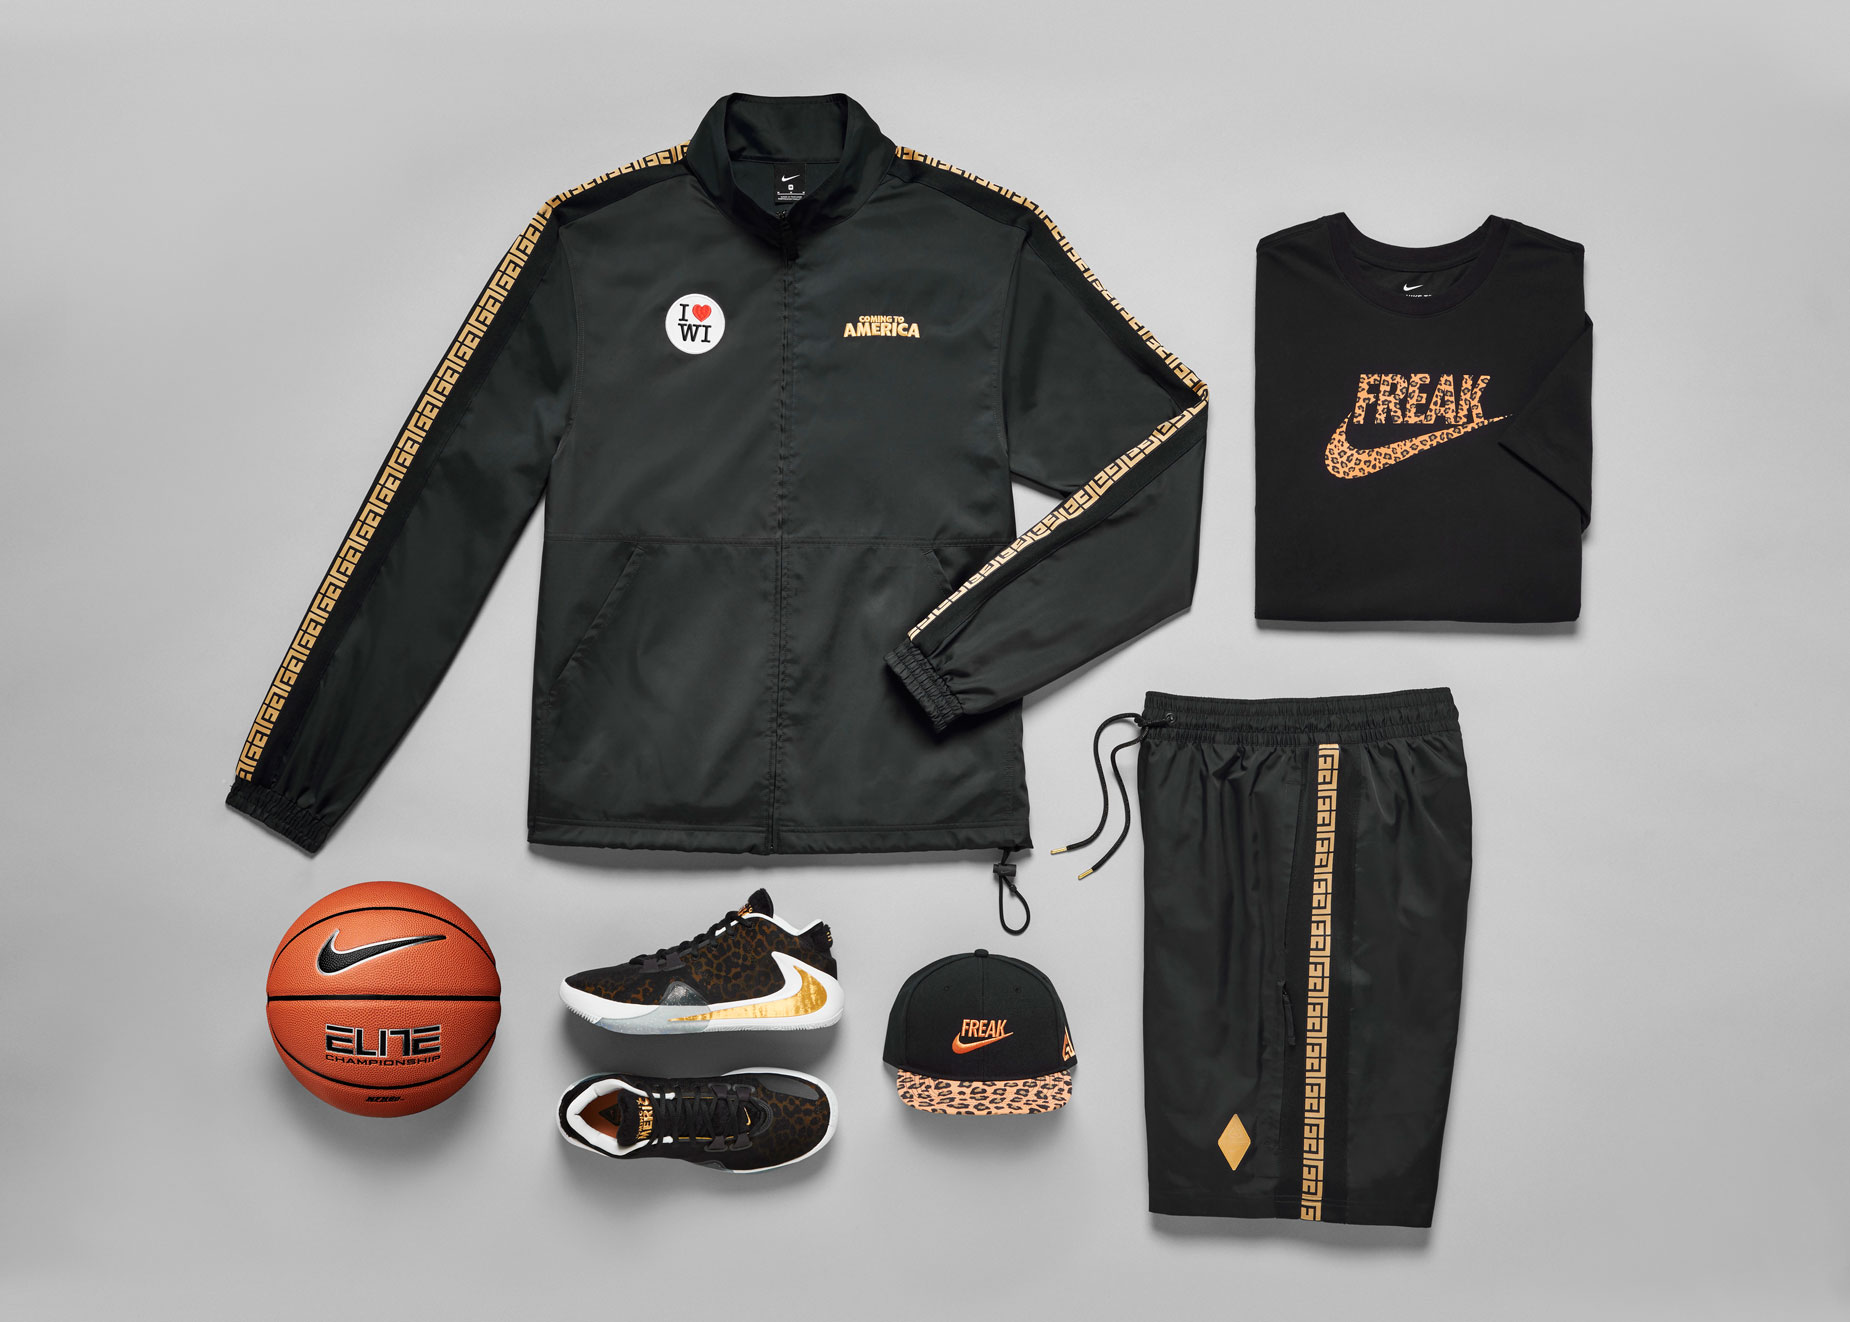 nike-zoom-freak-1-giannis-coming-to-america-clothing-shoes